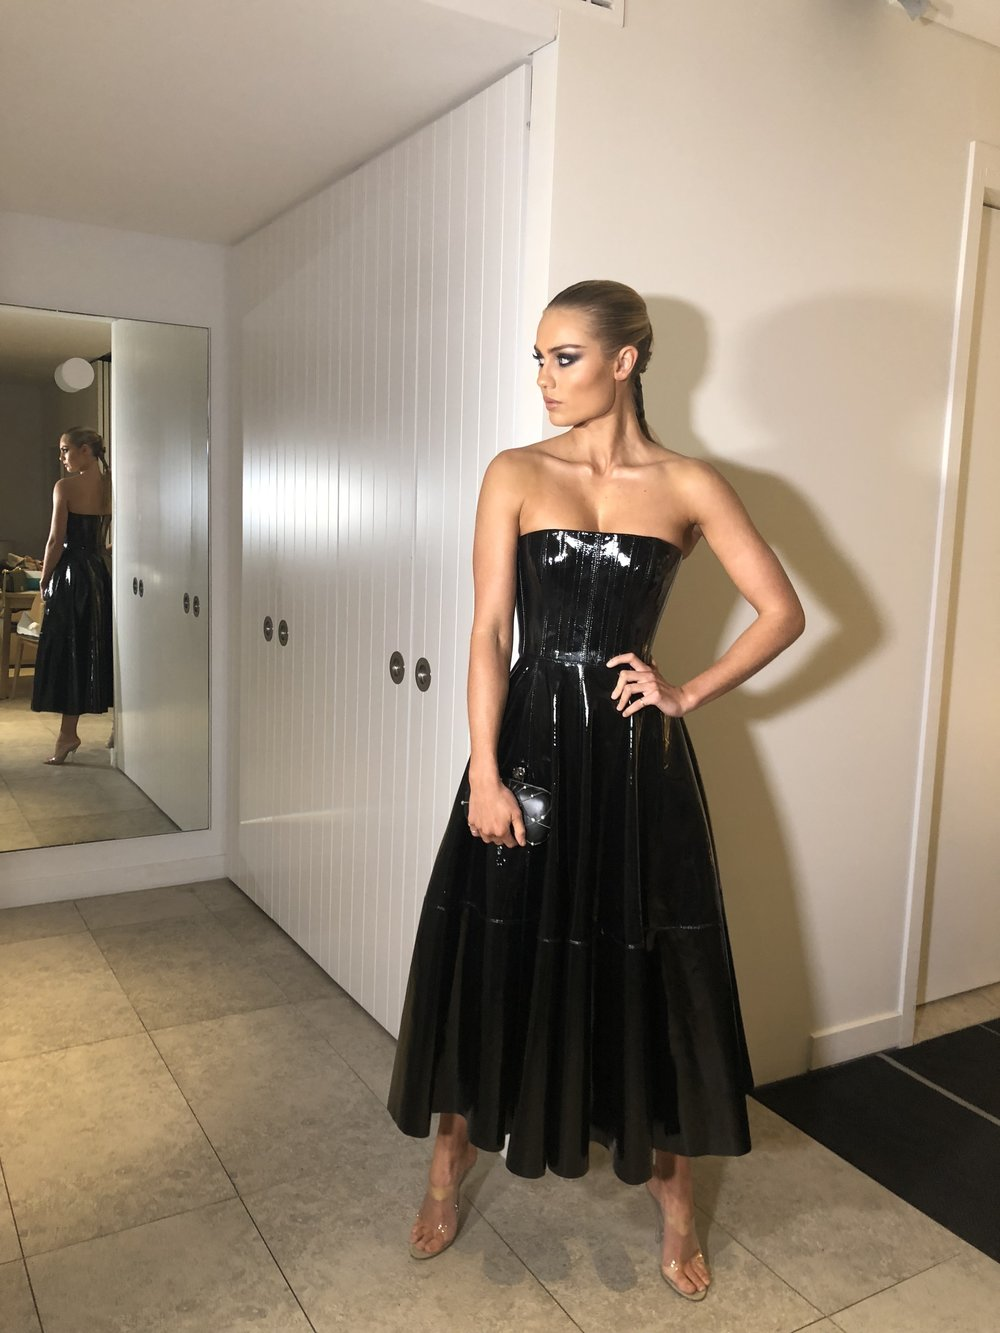 Women Of Style 2018 Awards - Elyse Knowles 1.jpg